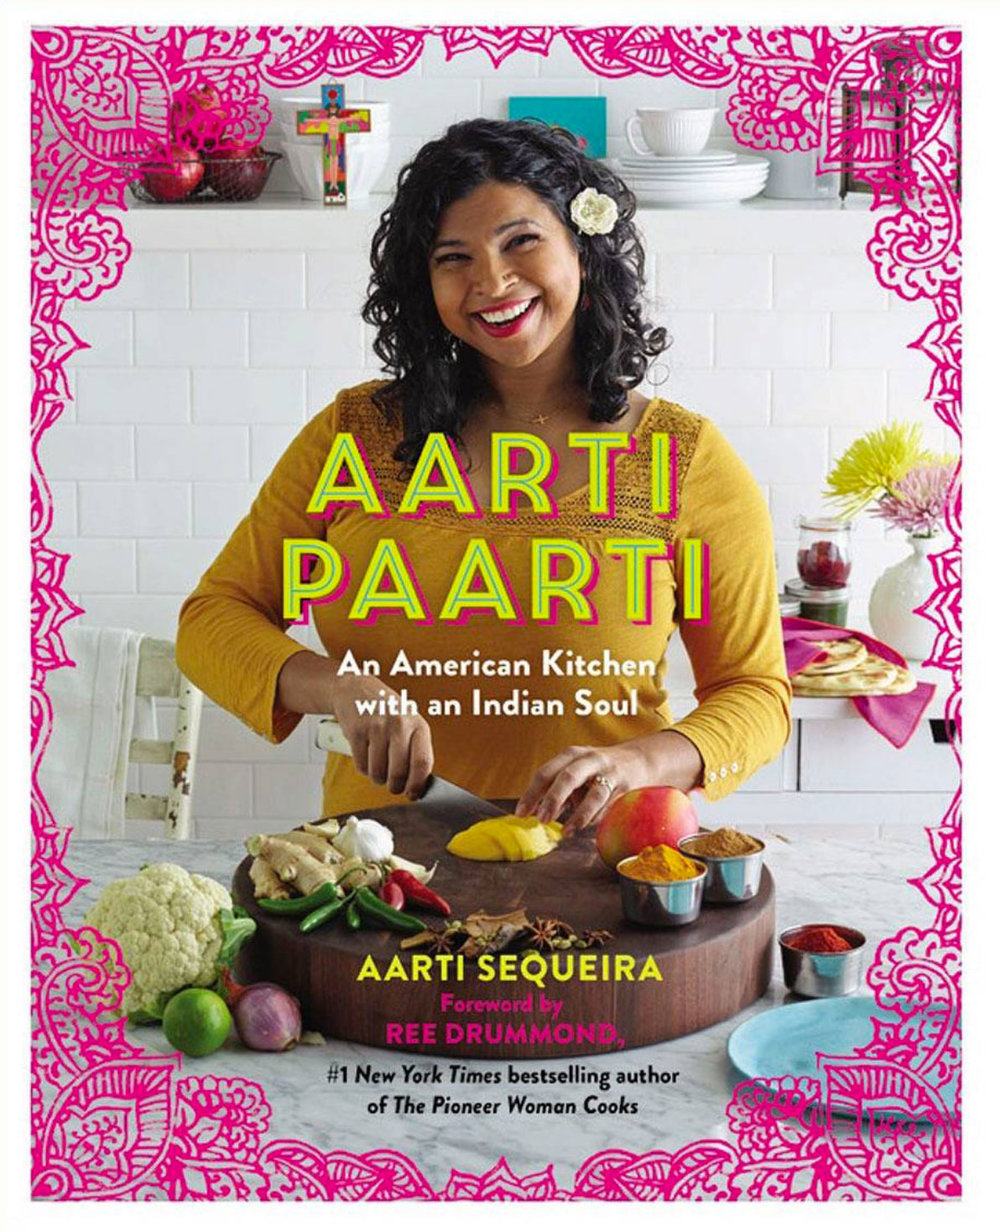 Aaarti-Party-Cookbook.jpg